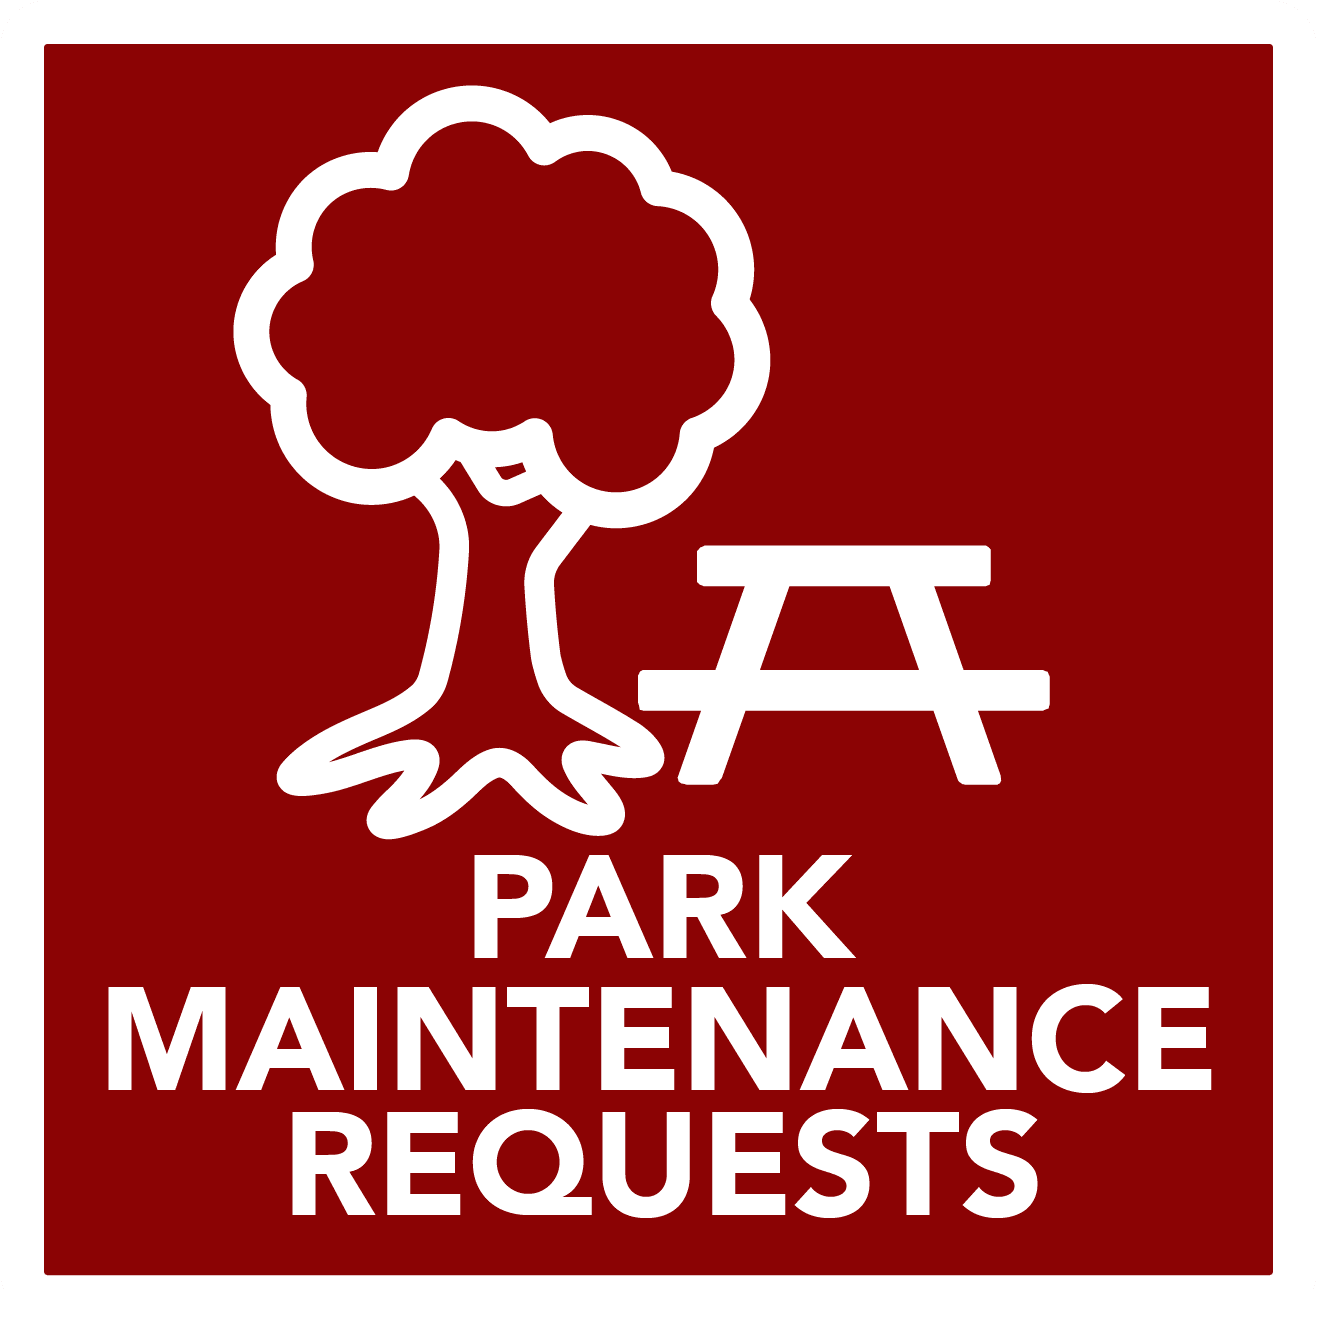 Park Maintenance Requests